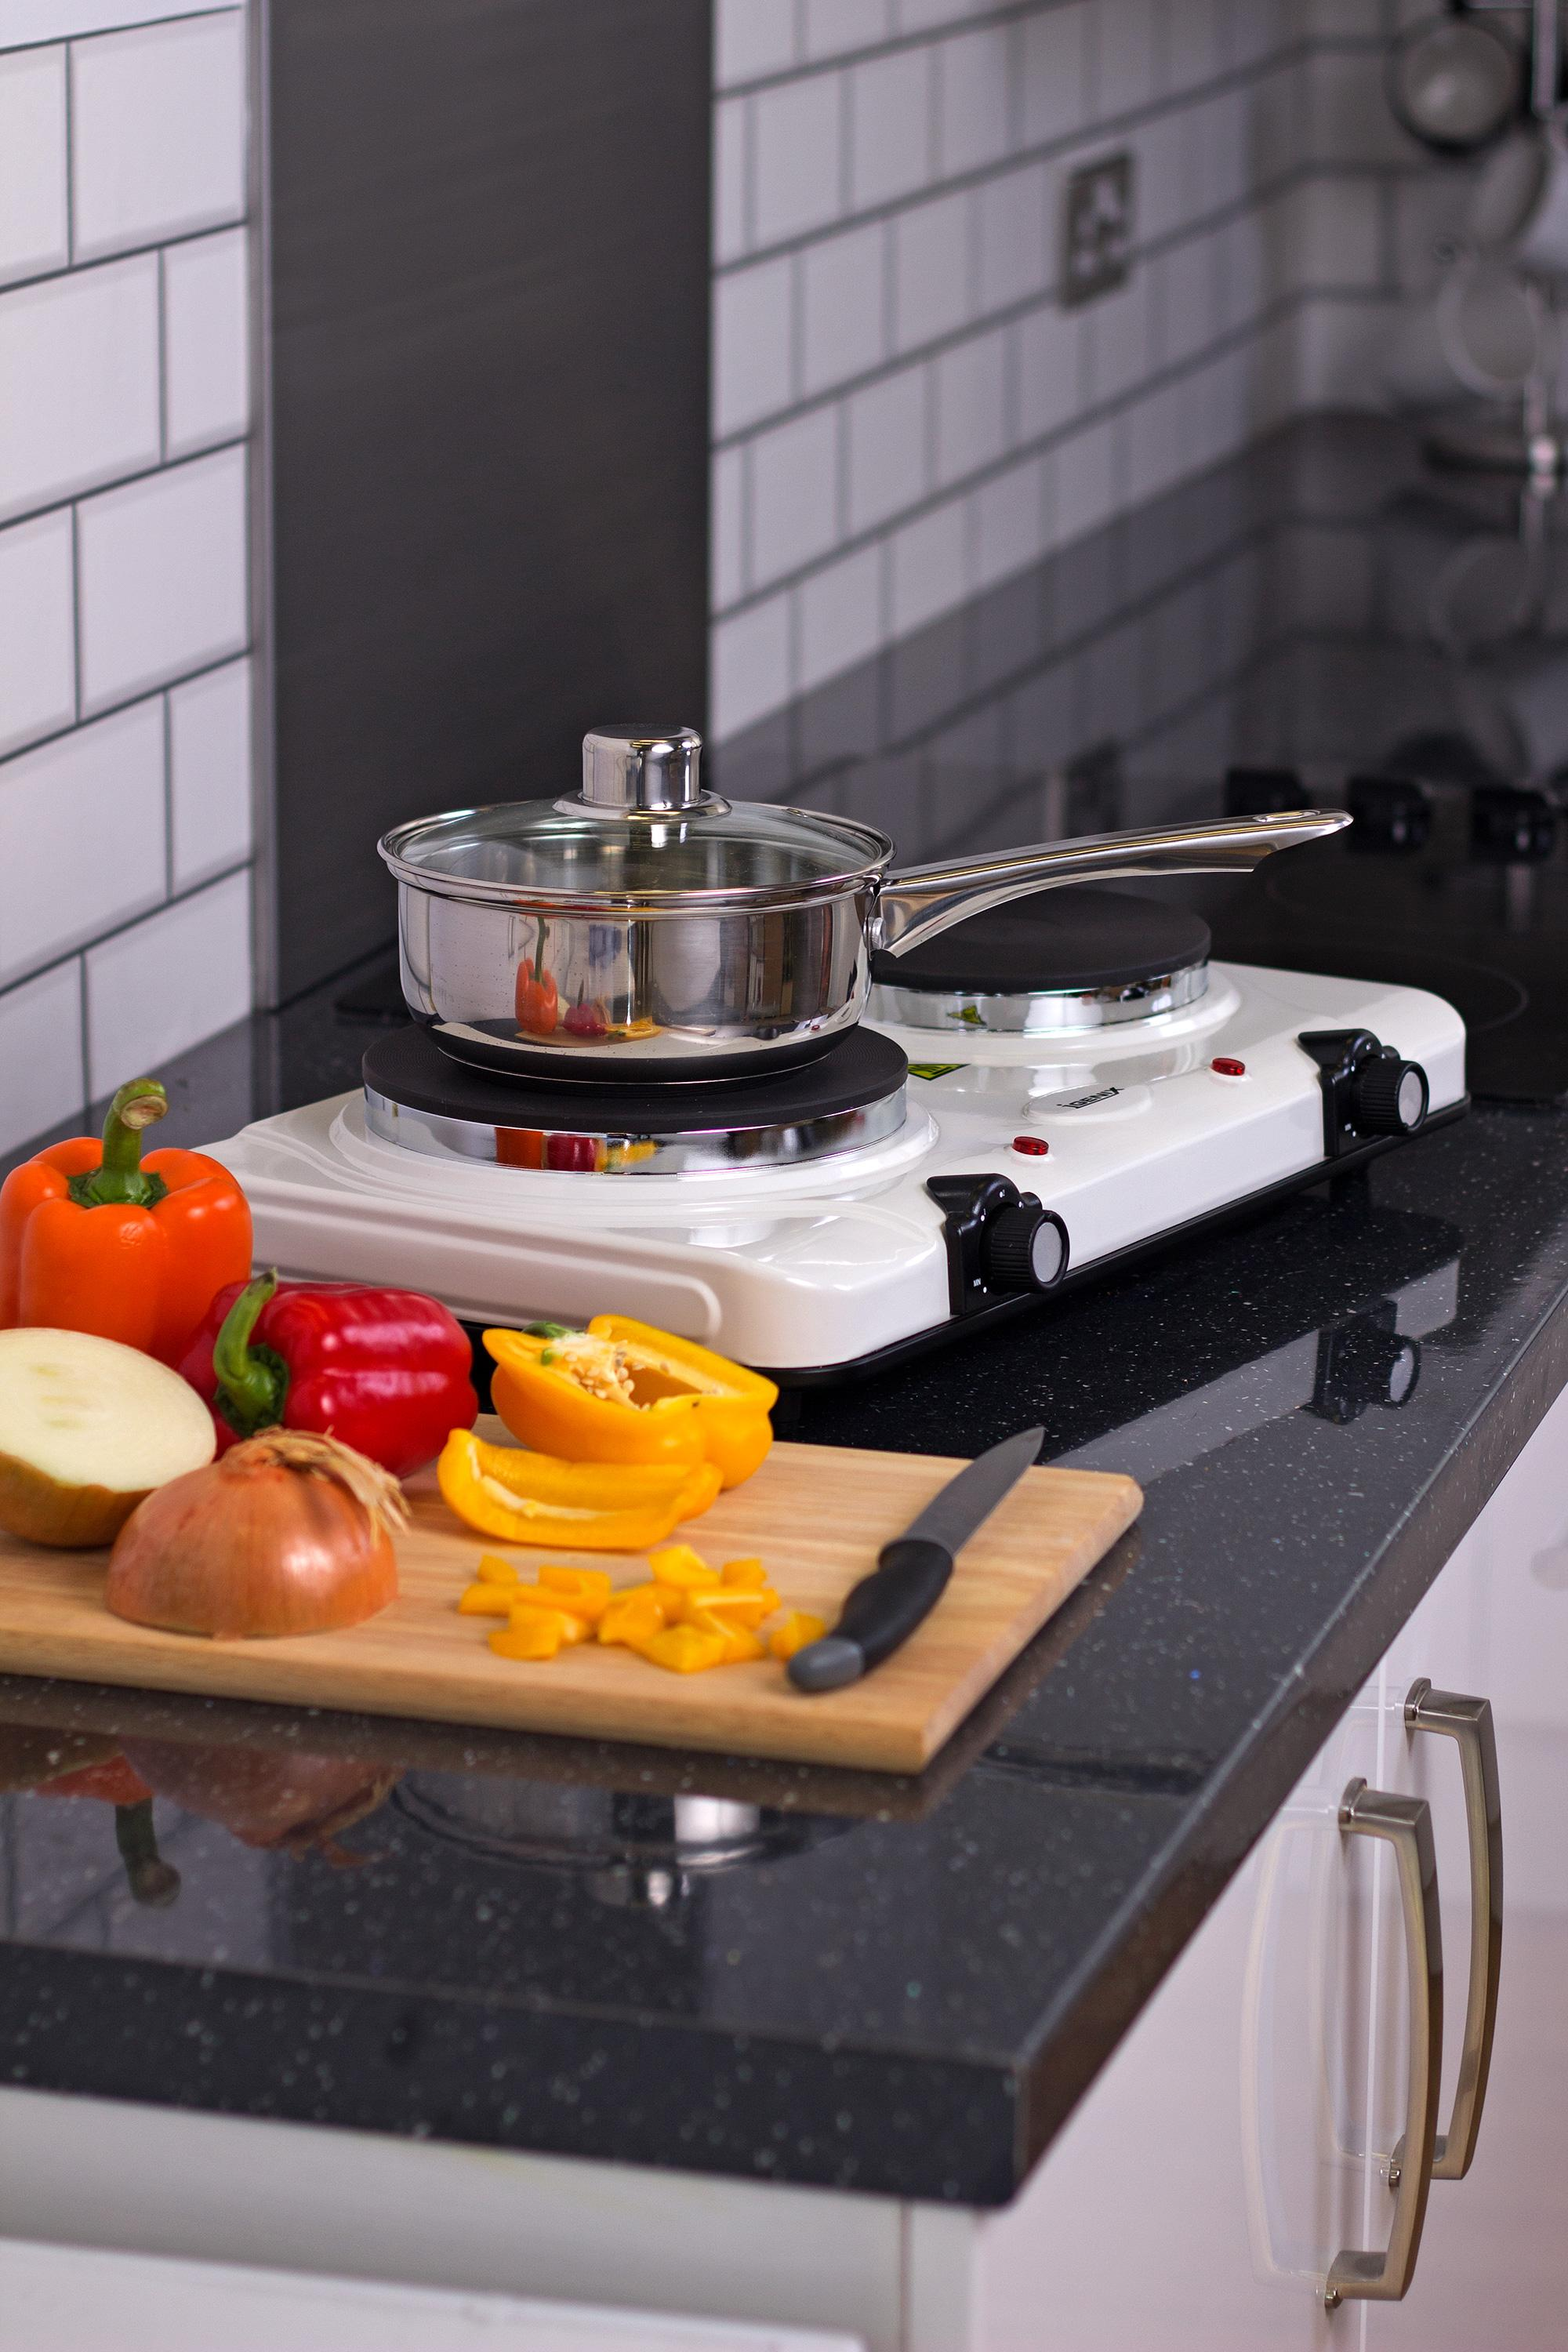 Table Top Hob 2250 W Double Boiling Ring Cooktop Igenix IG8020 Portable Double Electric Hotplate White